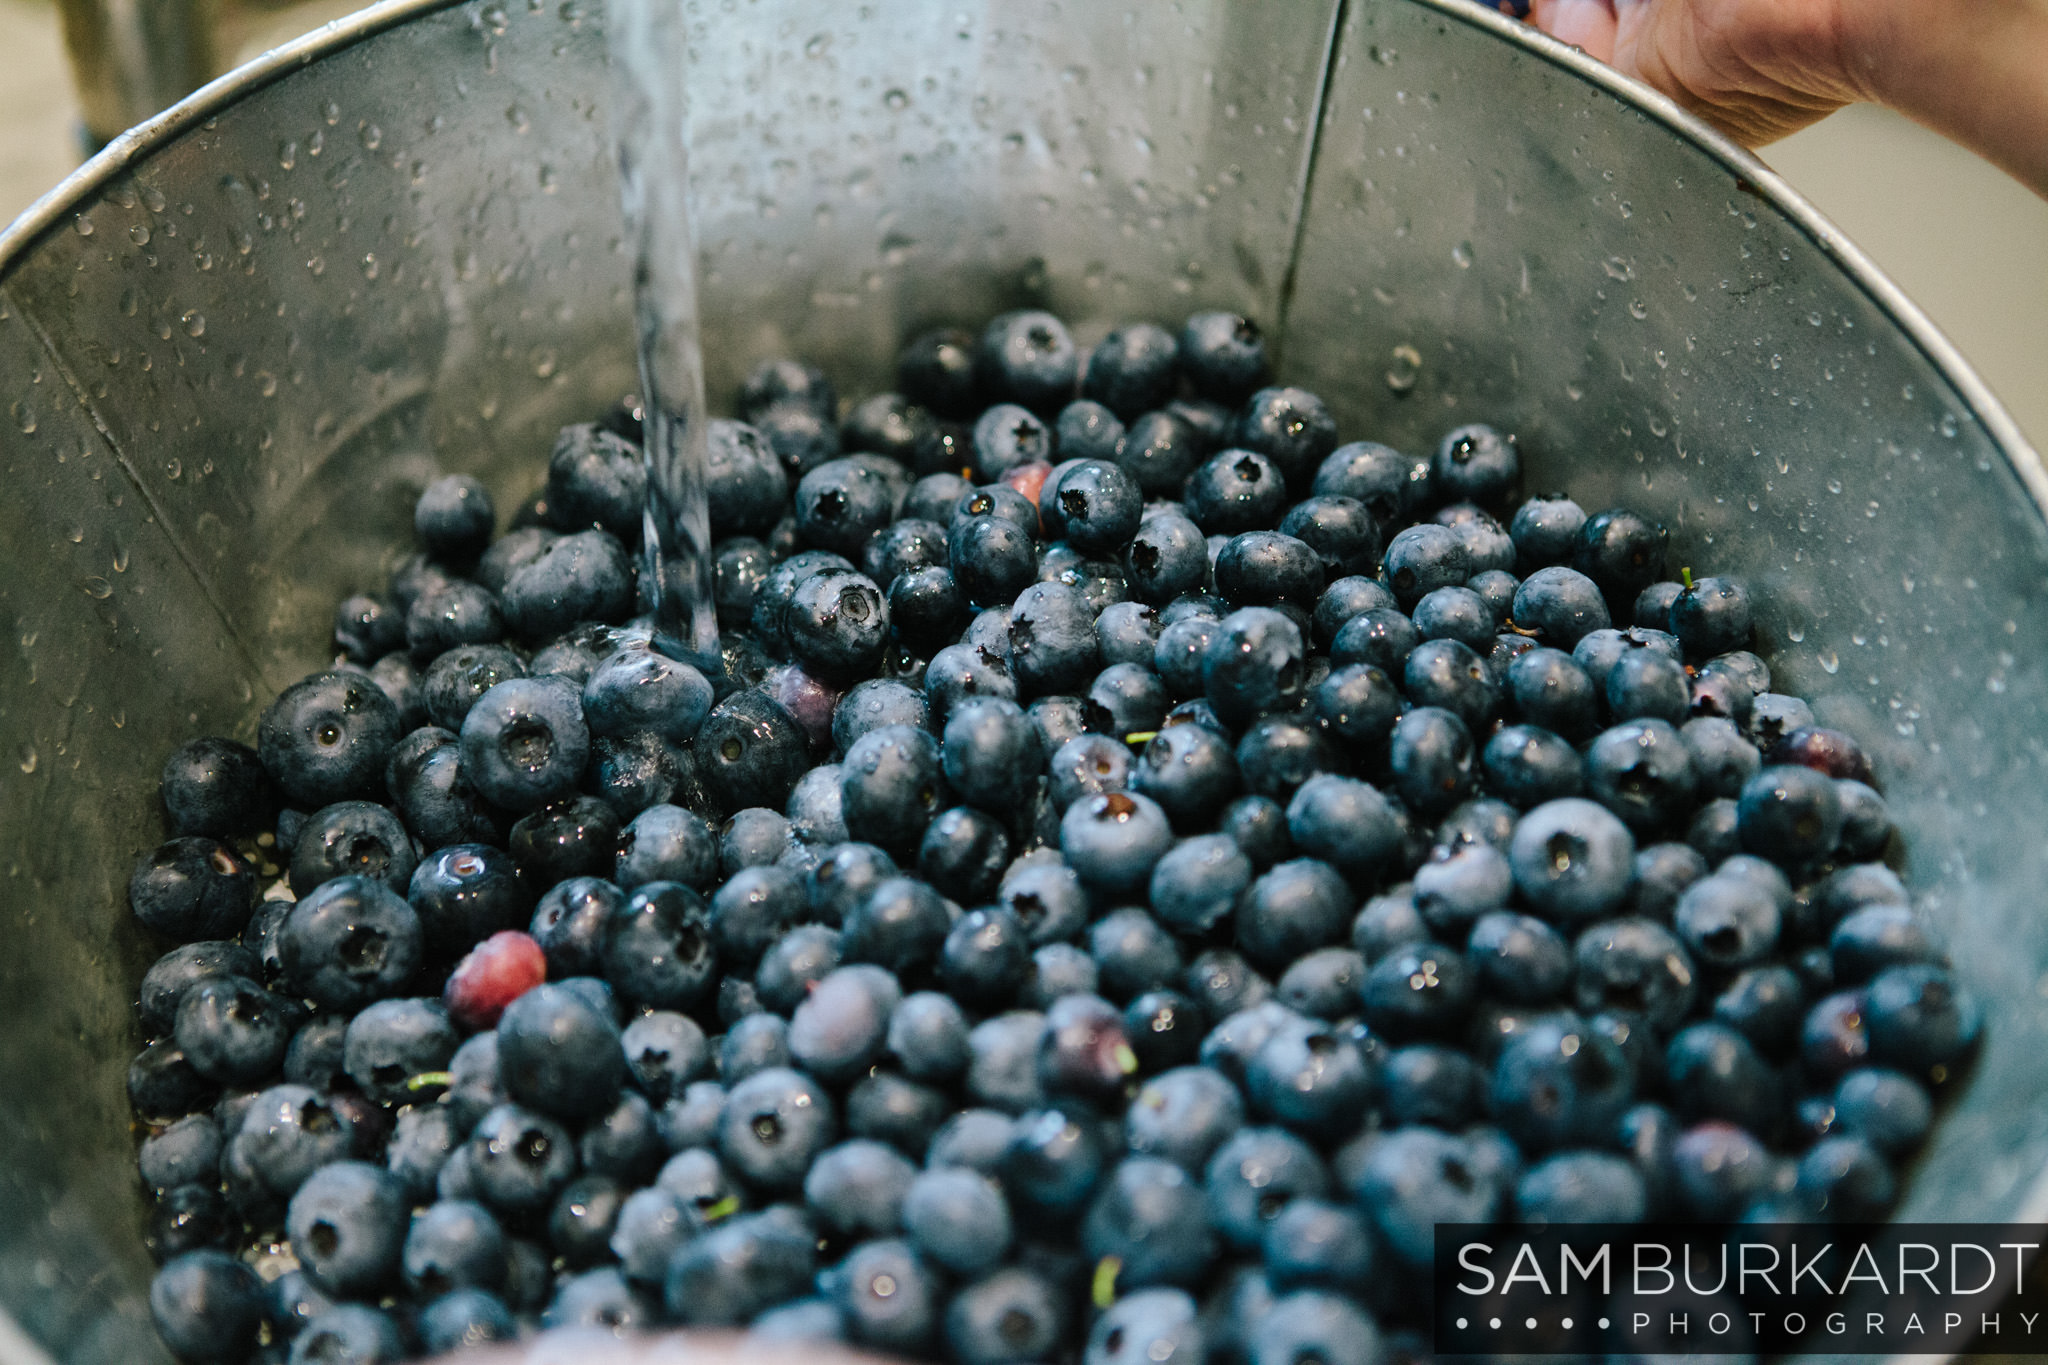 samburkardt_blueberries_kent_connecticut_015.jpg